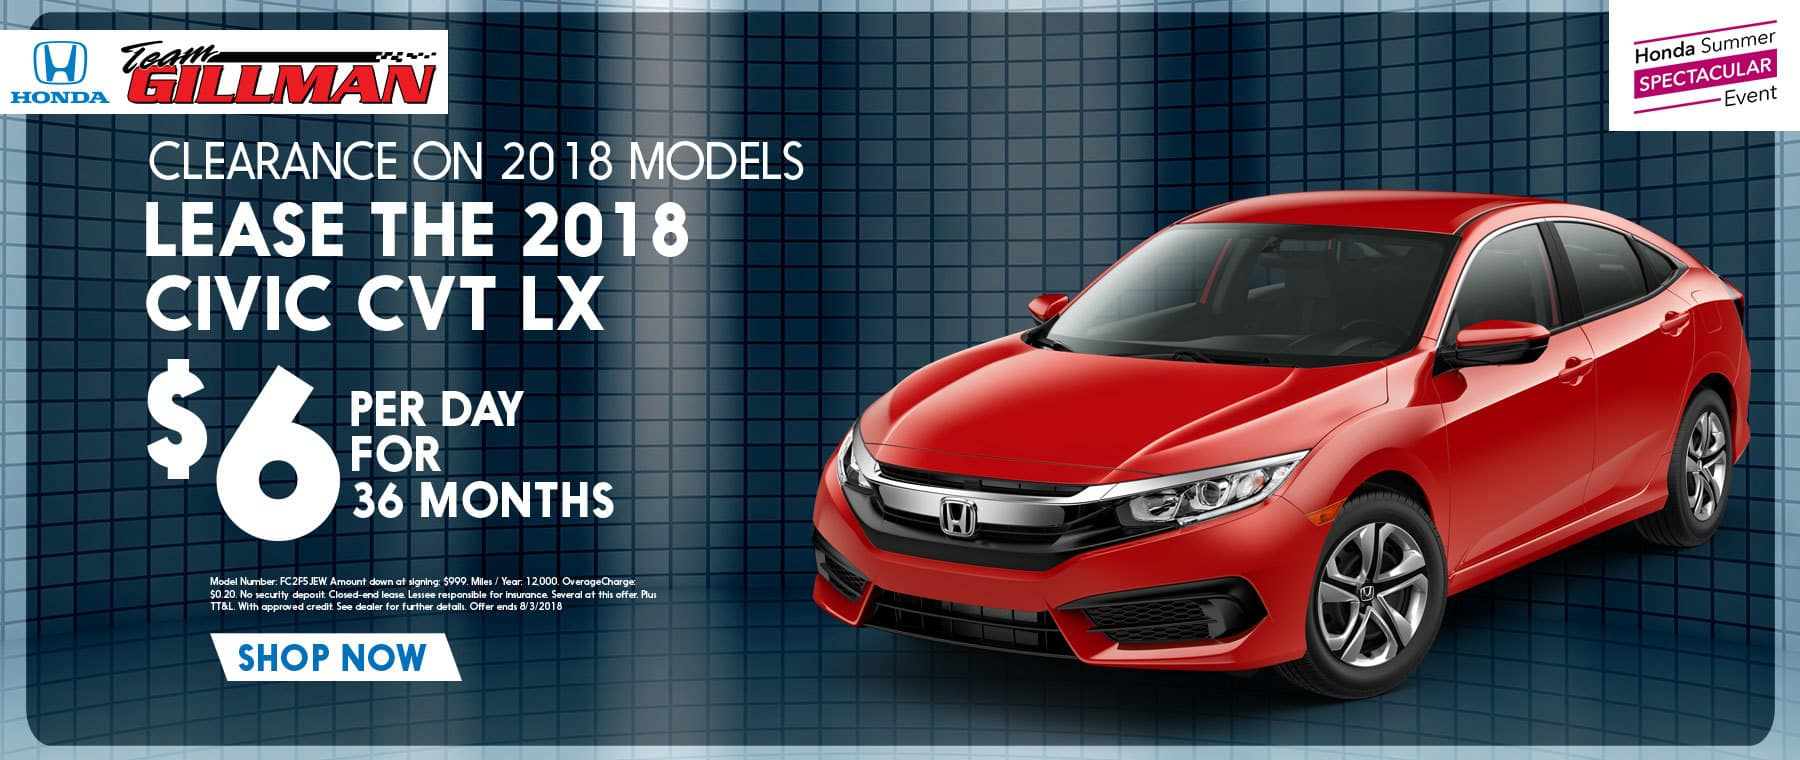 2018-honda-civic-for-sale-gillman-honda-ft-bend